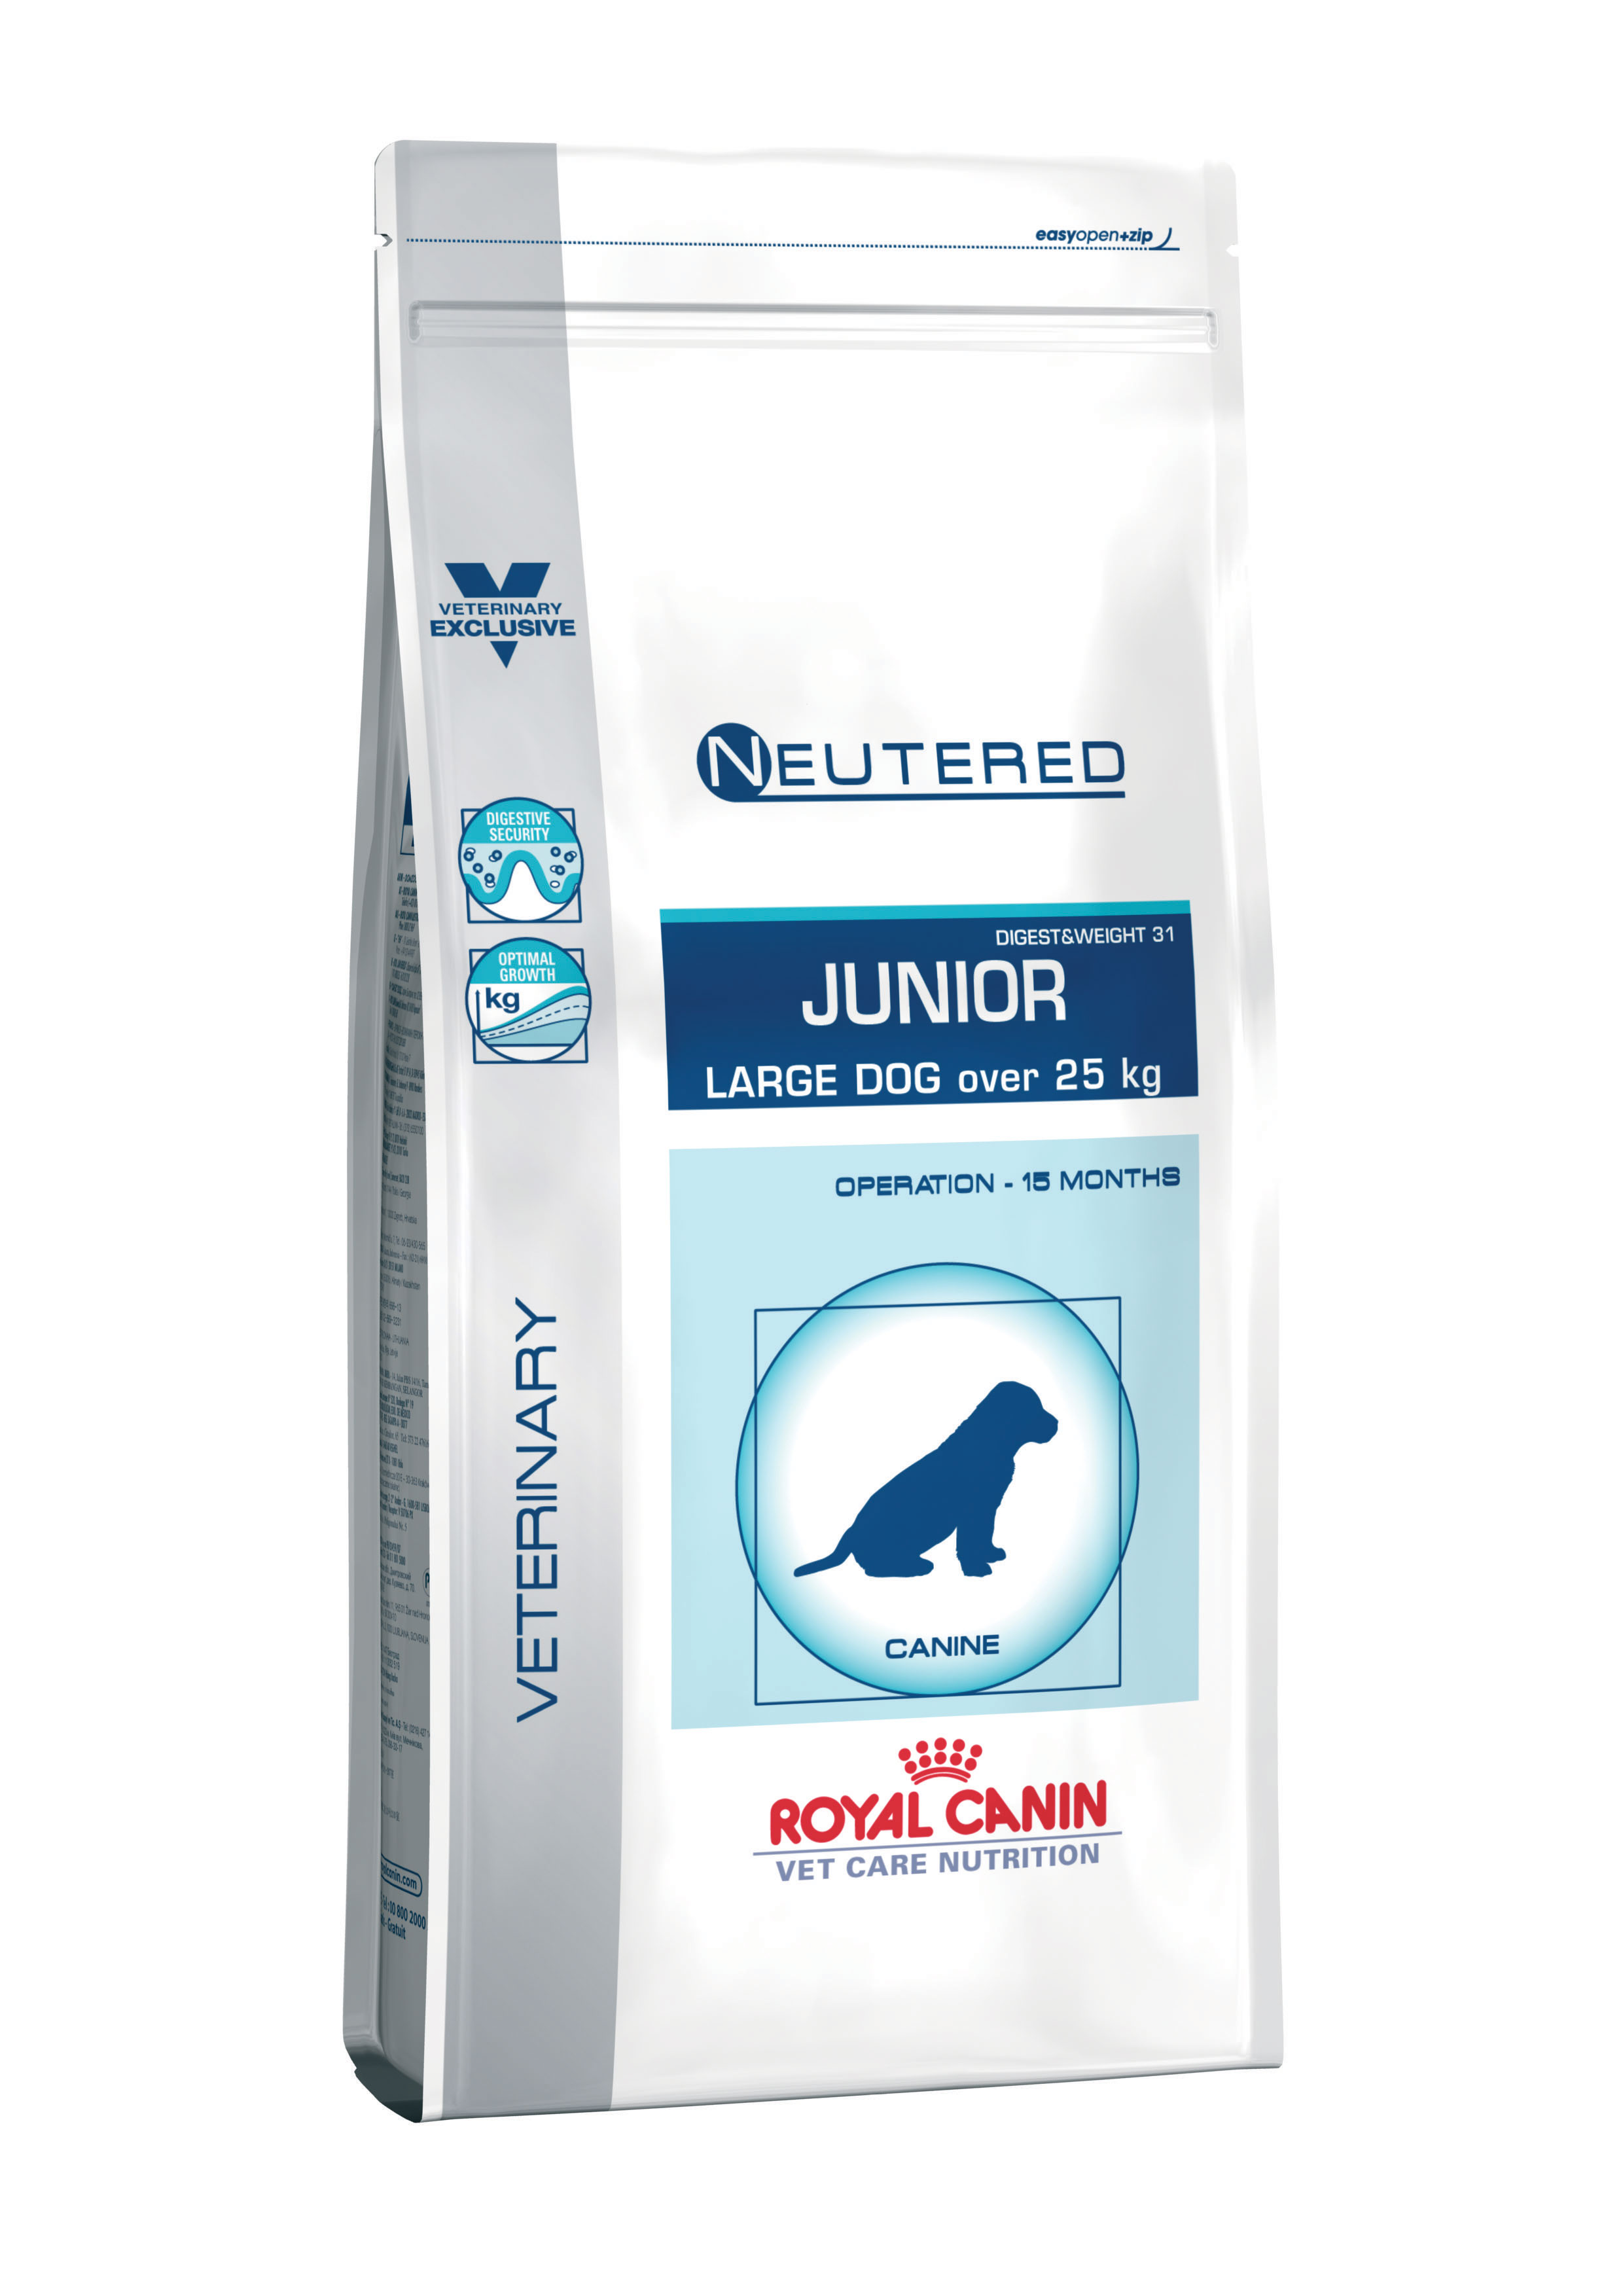 Neutered junior large dog